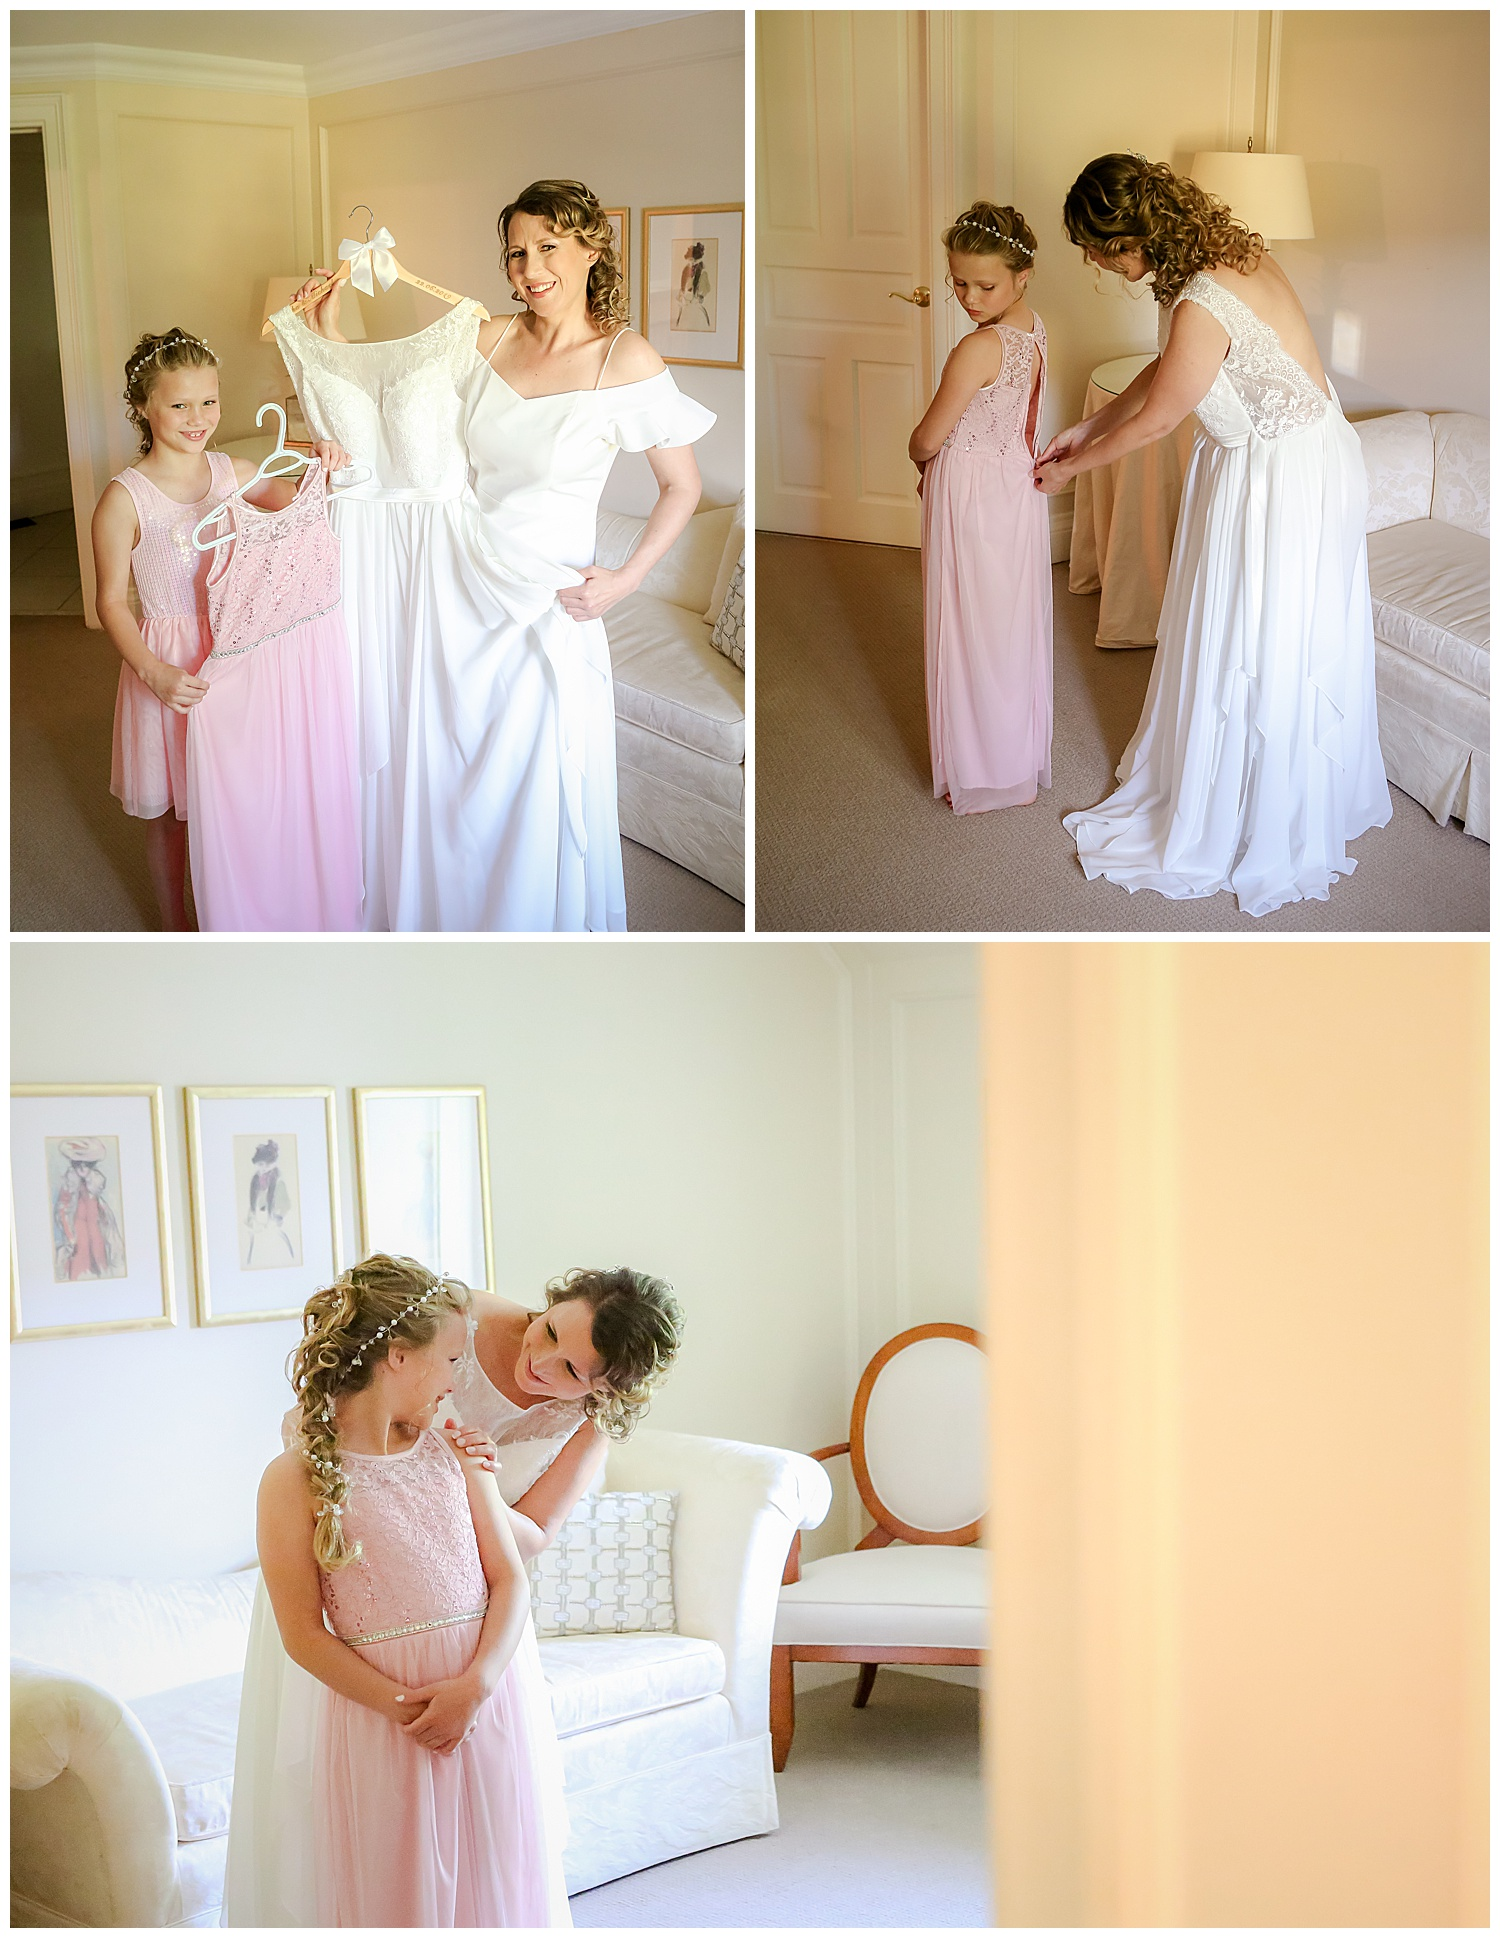 mother-daughter-getting-ready